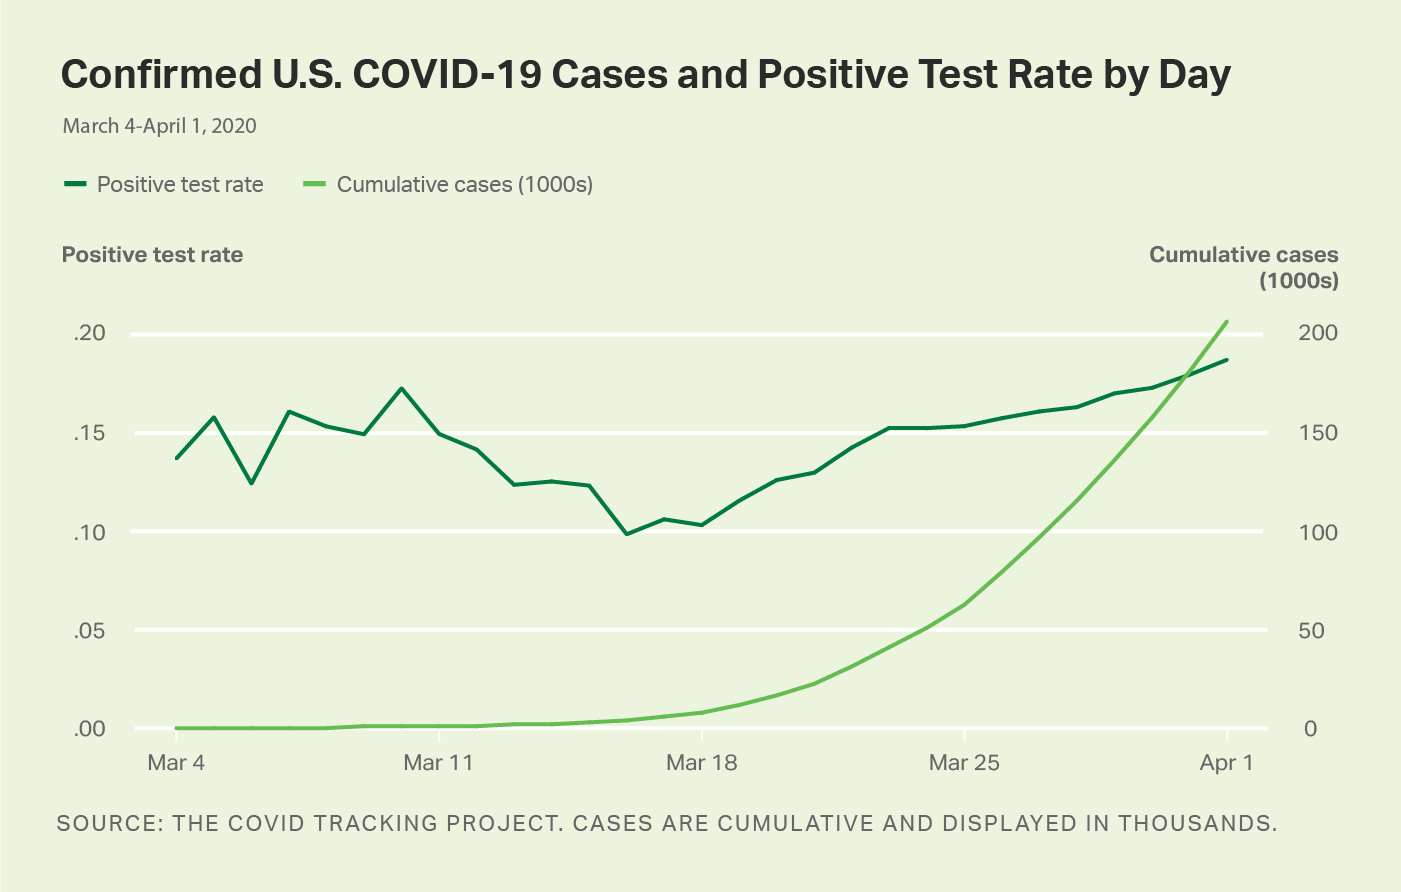 Line graph. Confirmed U.S. COVID-19 cases and positive test rate by day.